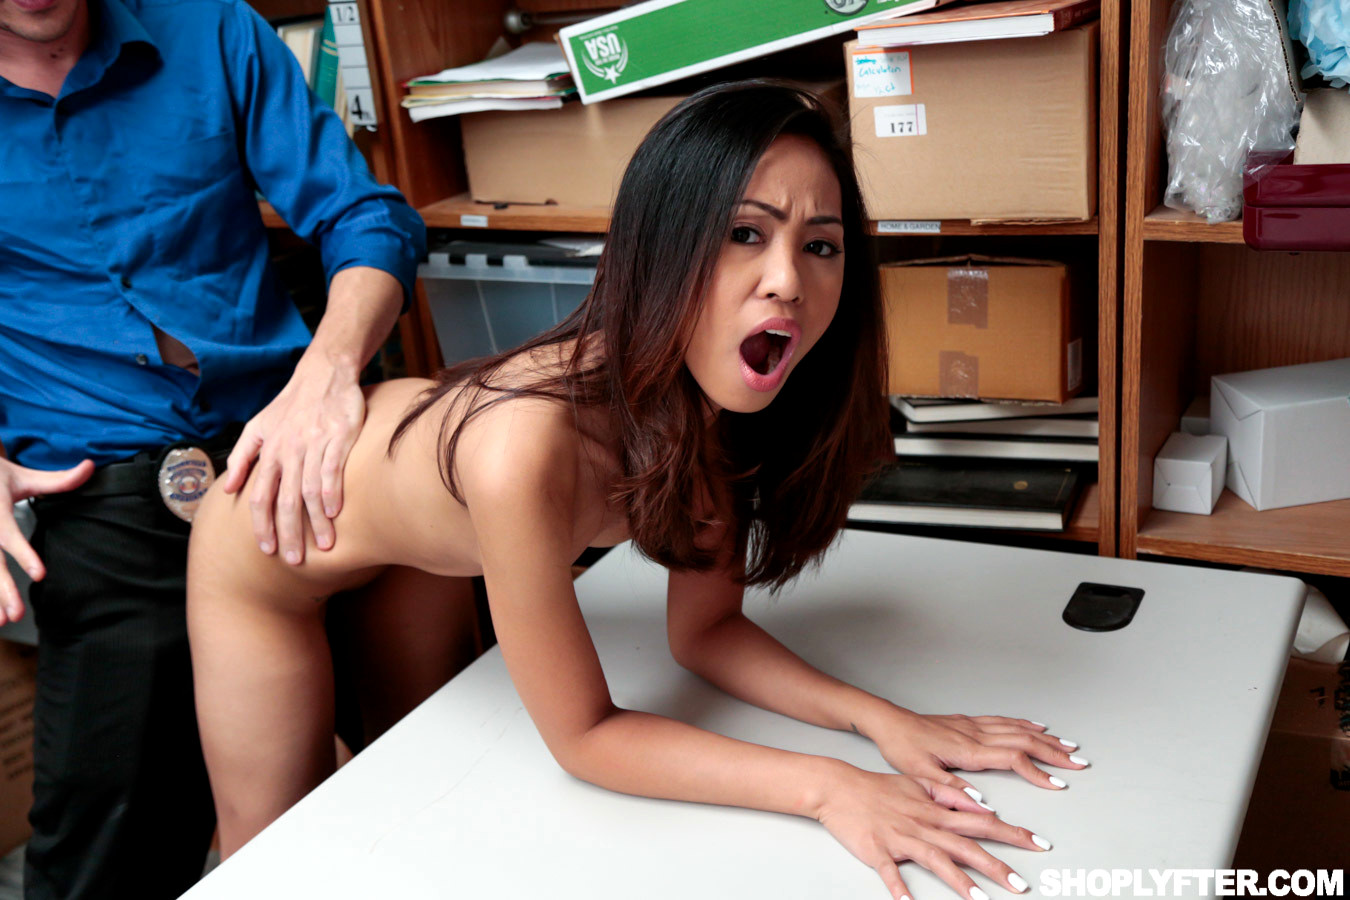 Babe Today Shoplyfter Aurora Winters Funny Asian Mobile -2642